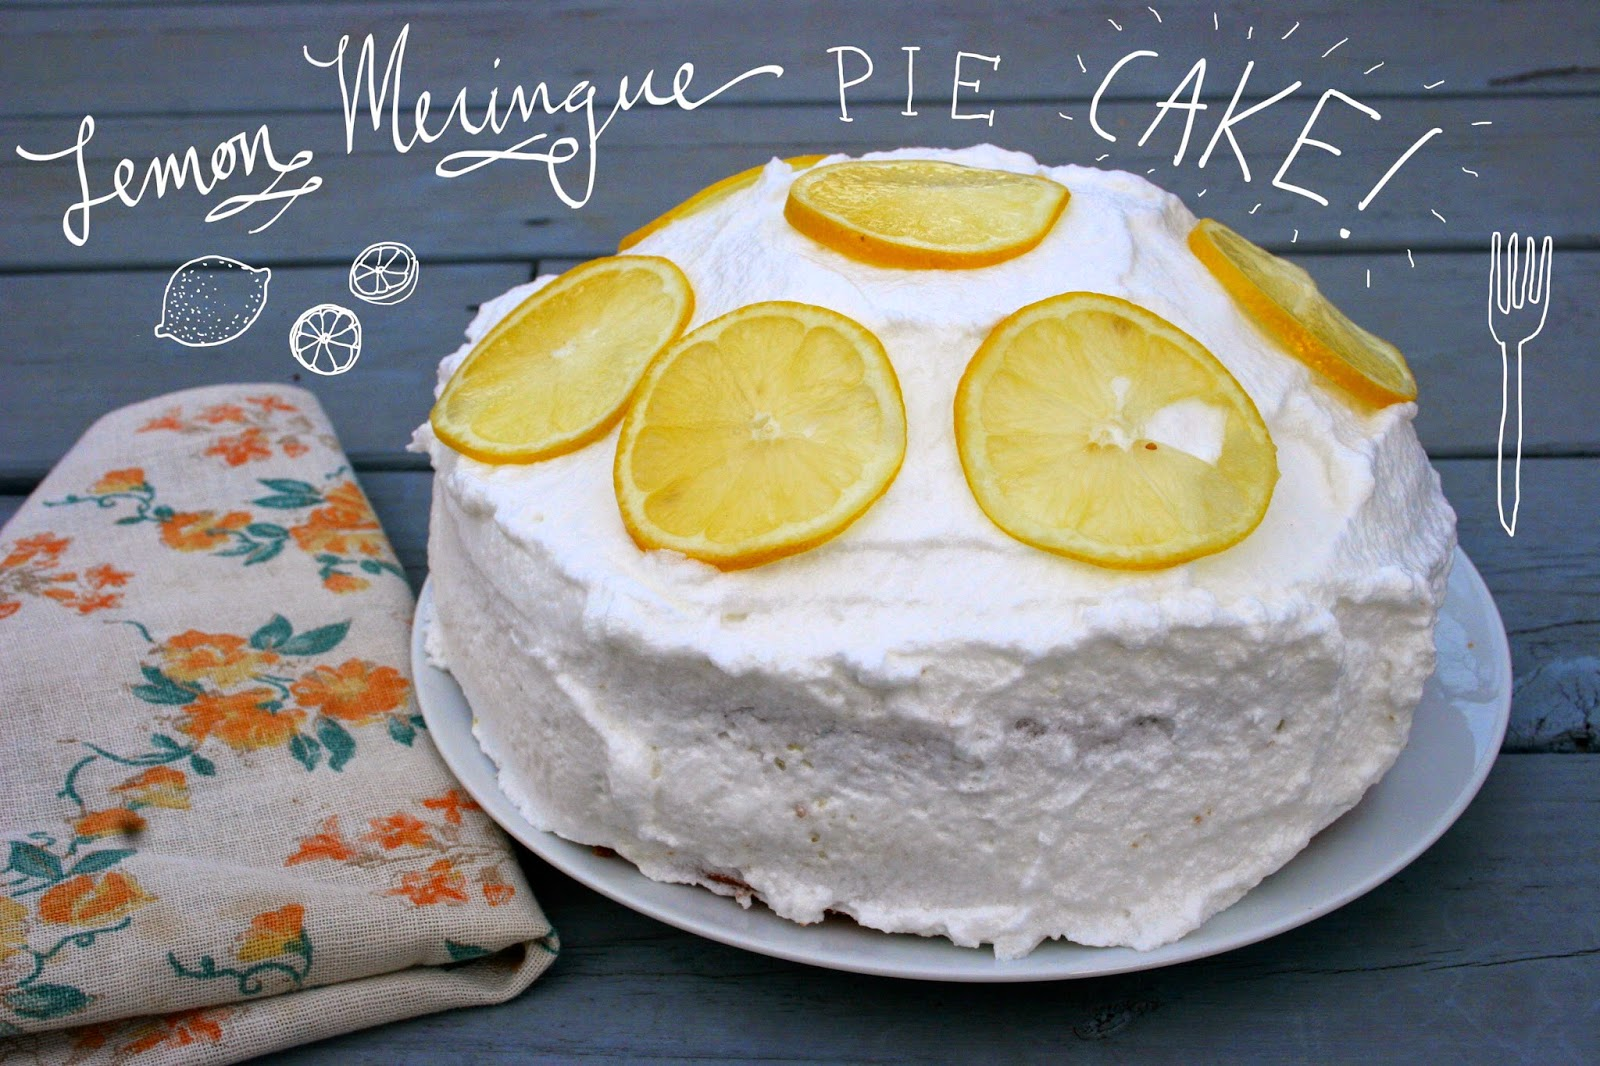 Lemon Meringue Pie Cake with Text